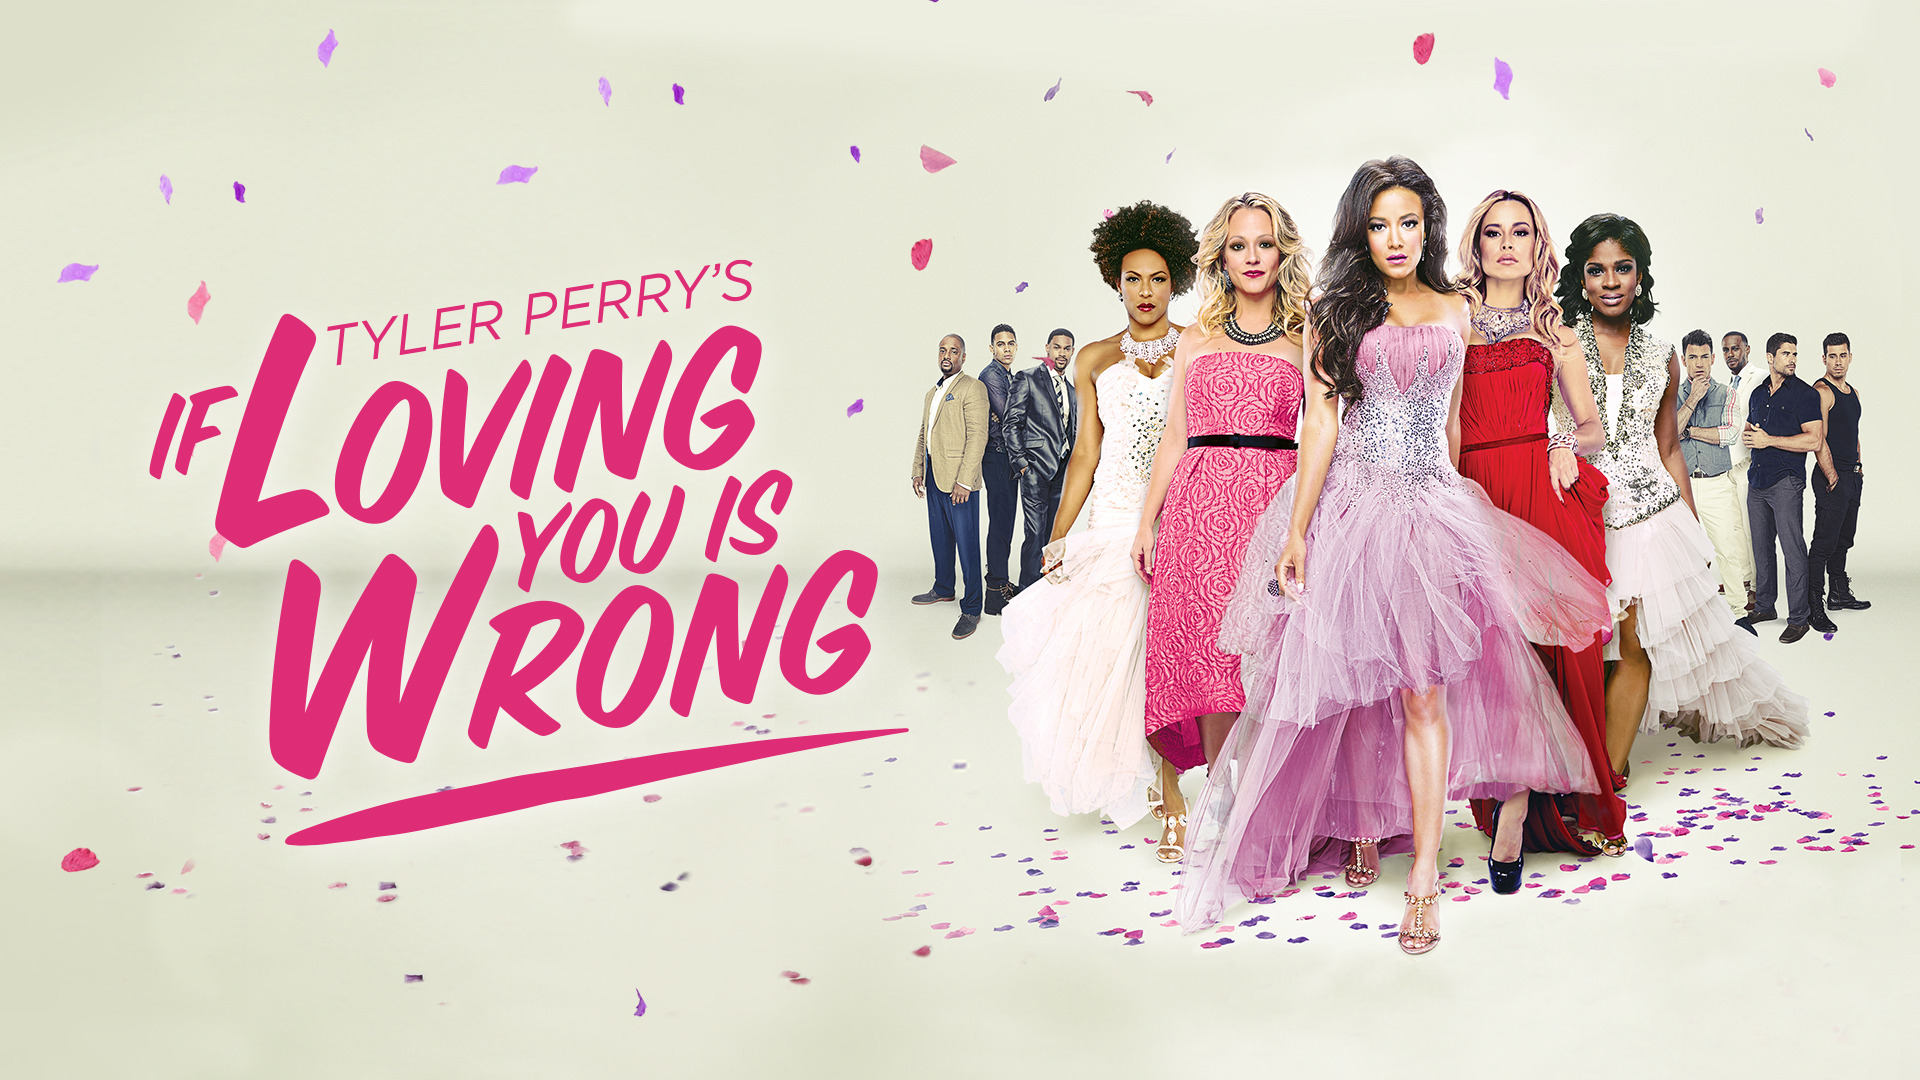 If Loving You Is Wrong New Season 2019 Tyler Perry » 'If Loving You is Wrong' returns for Season 3 on